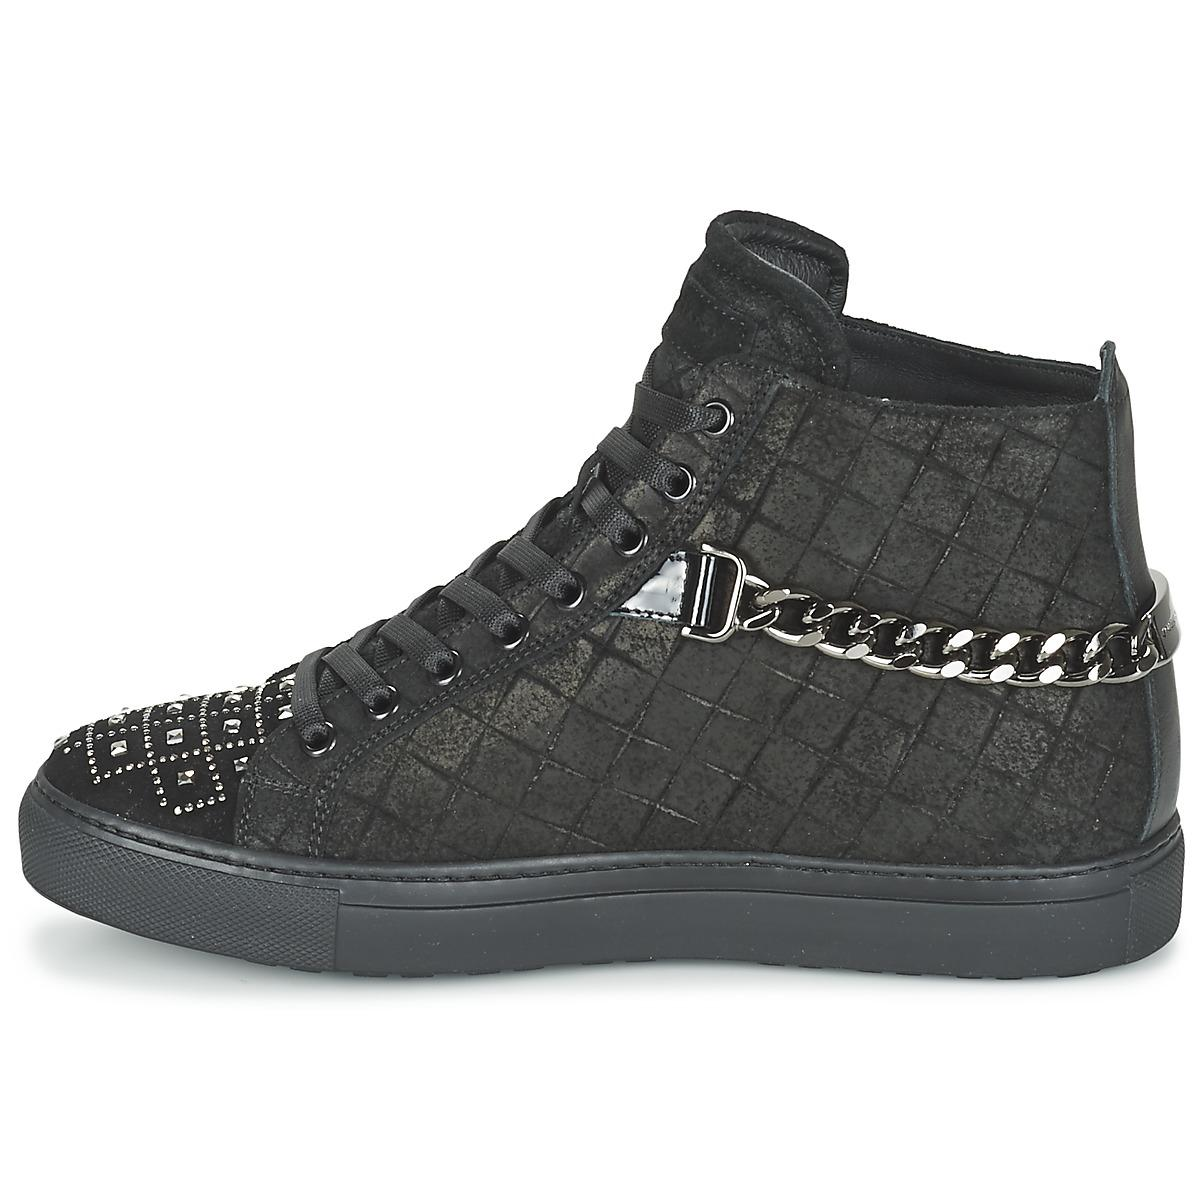 John Galliano Leather Rambert Shoes (high-top Trainers) in Black